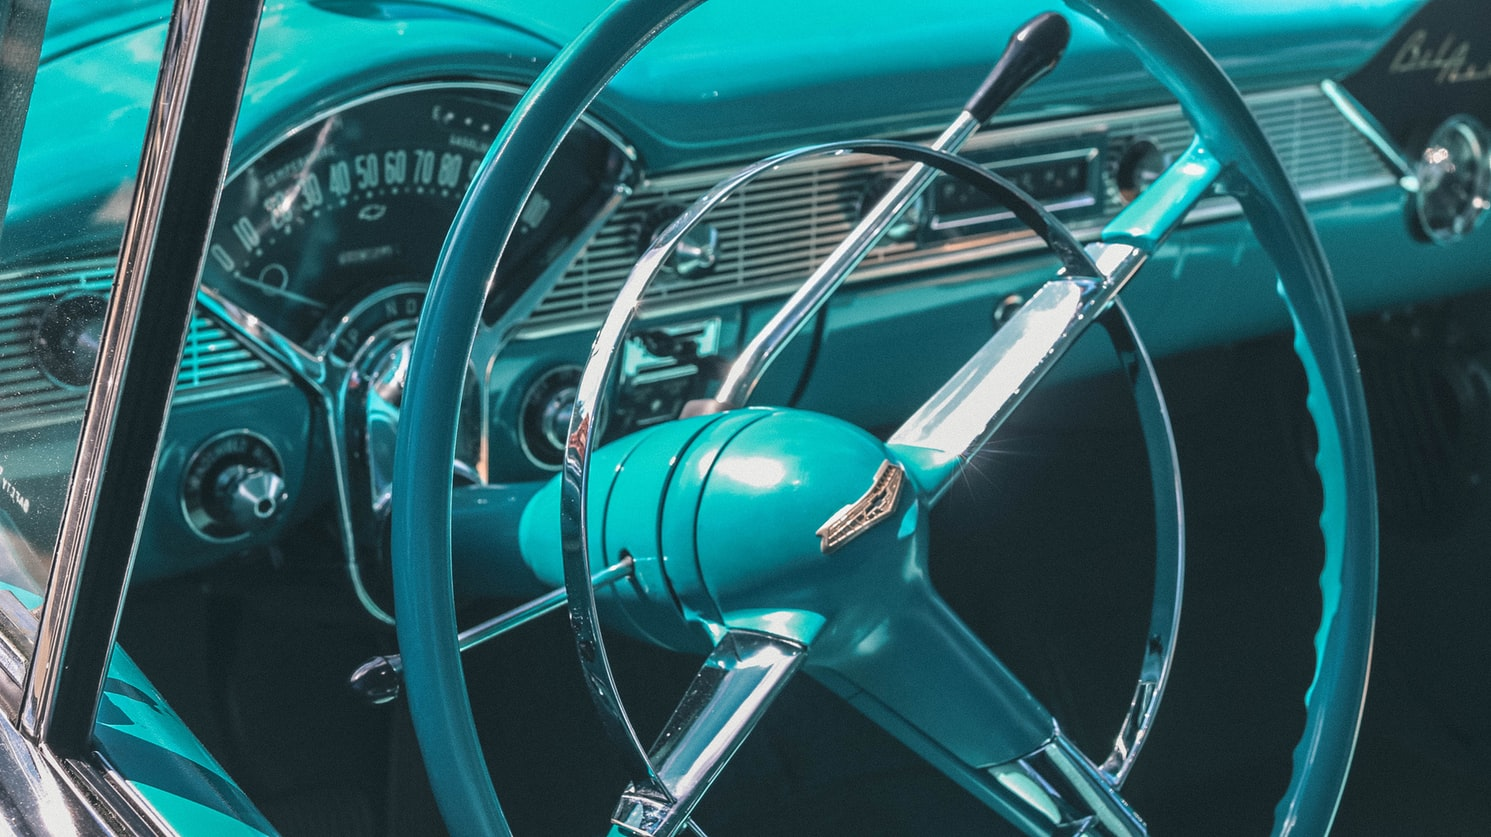 2019-A-Car-Without-A-Steering-Wheel-blog-image